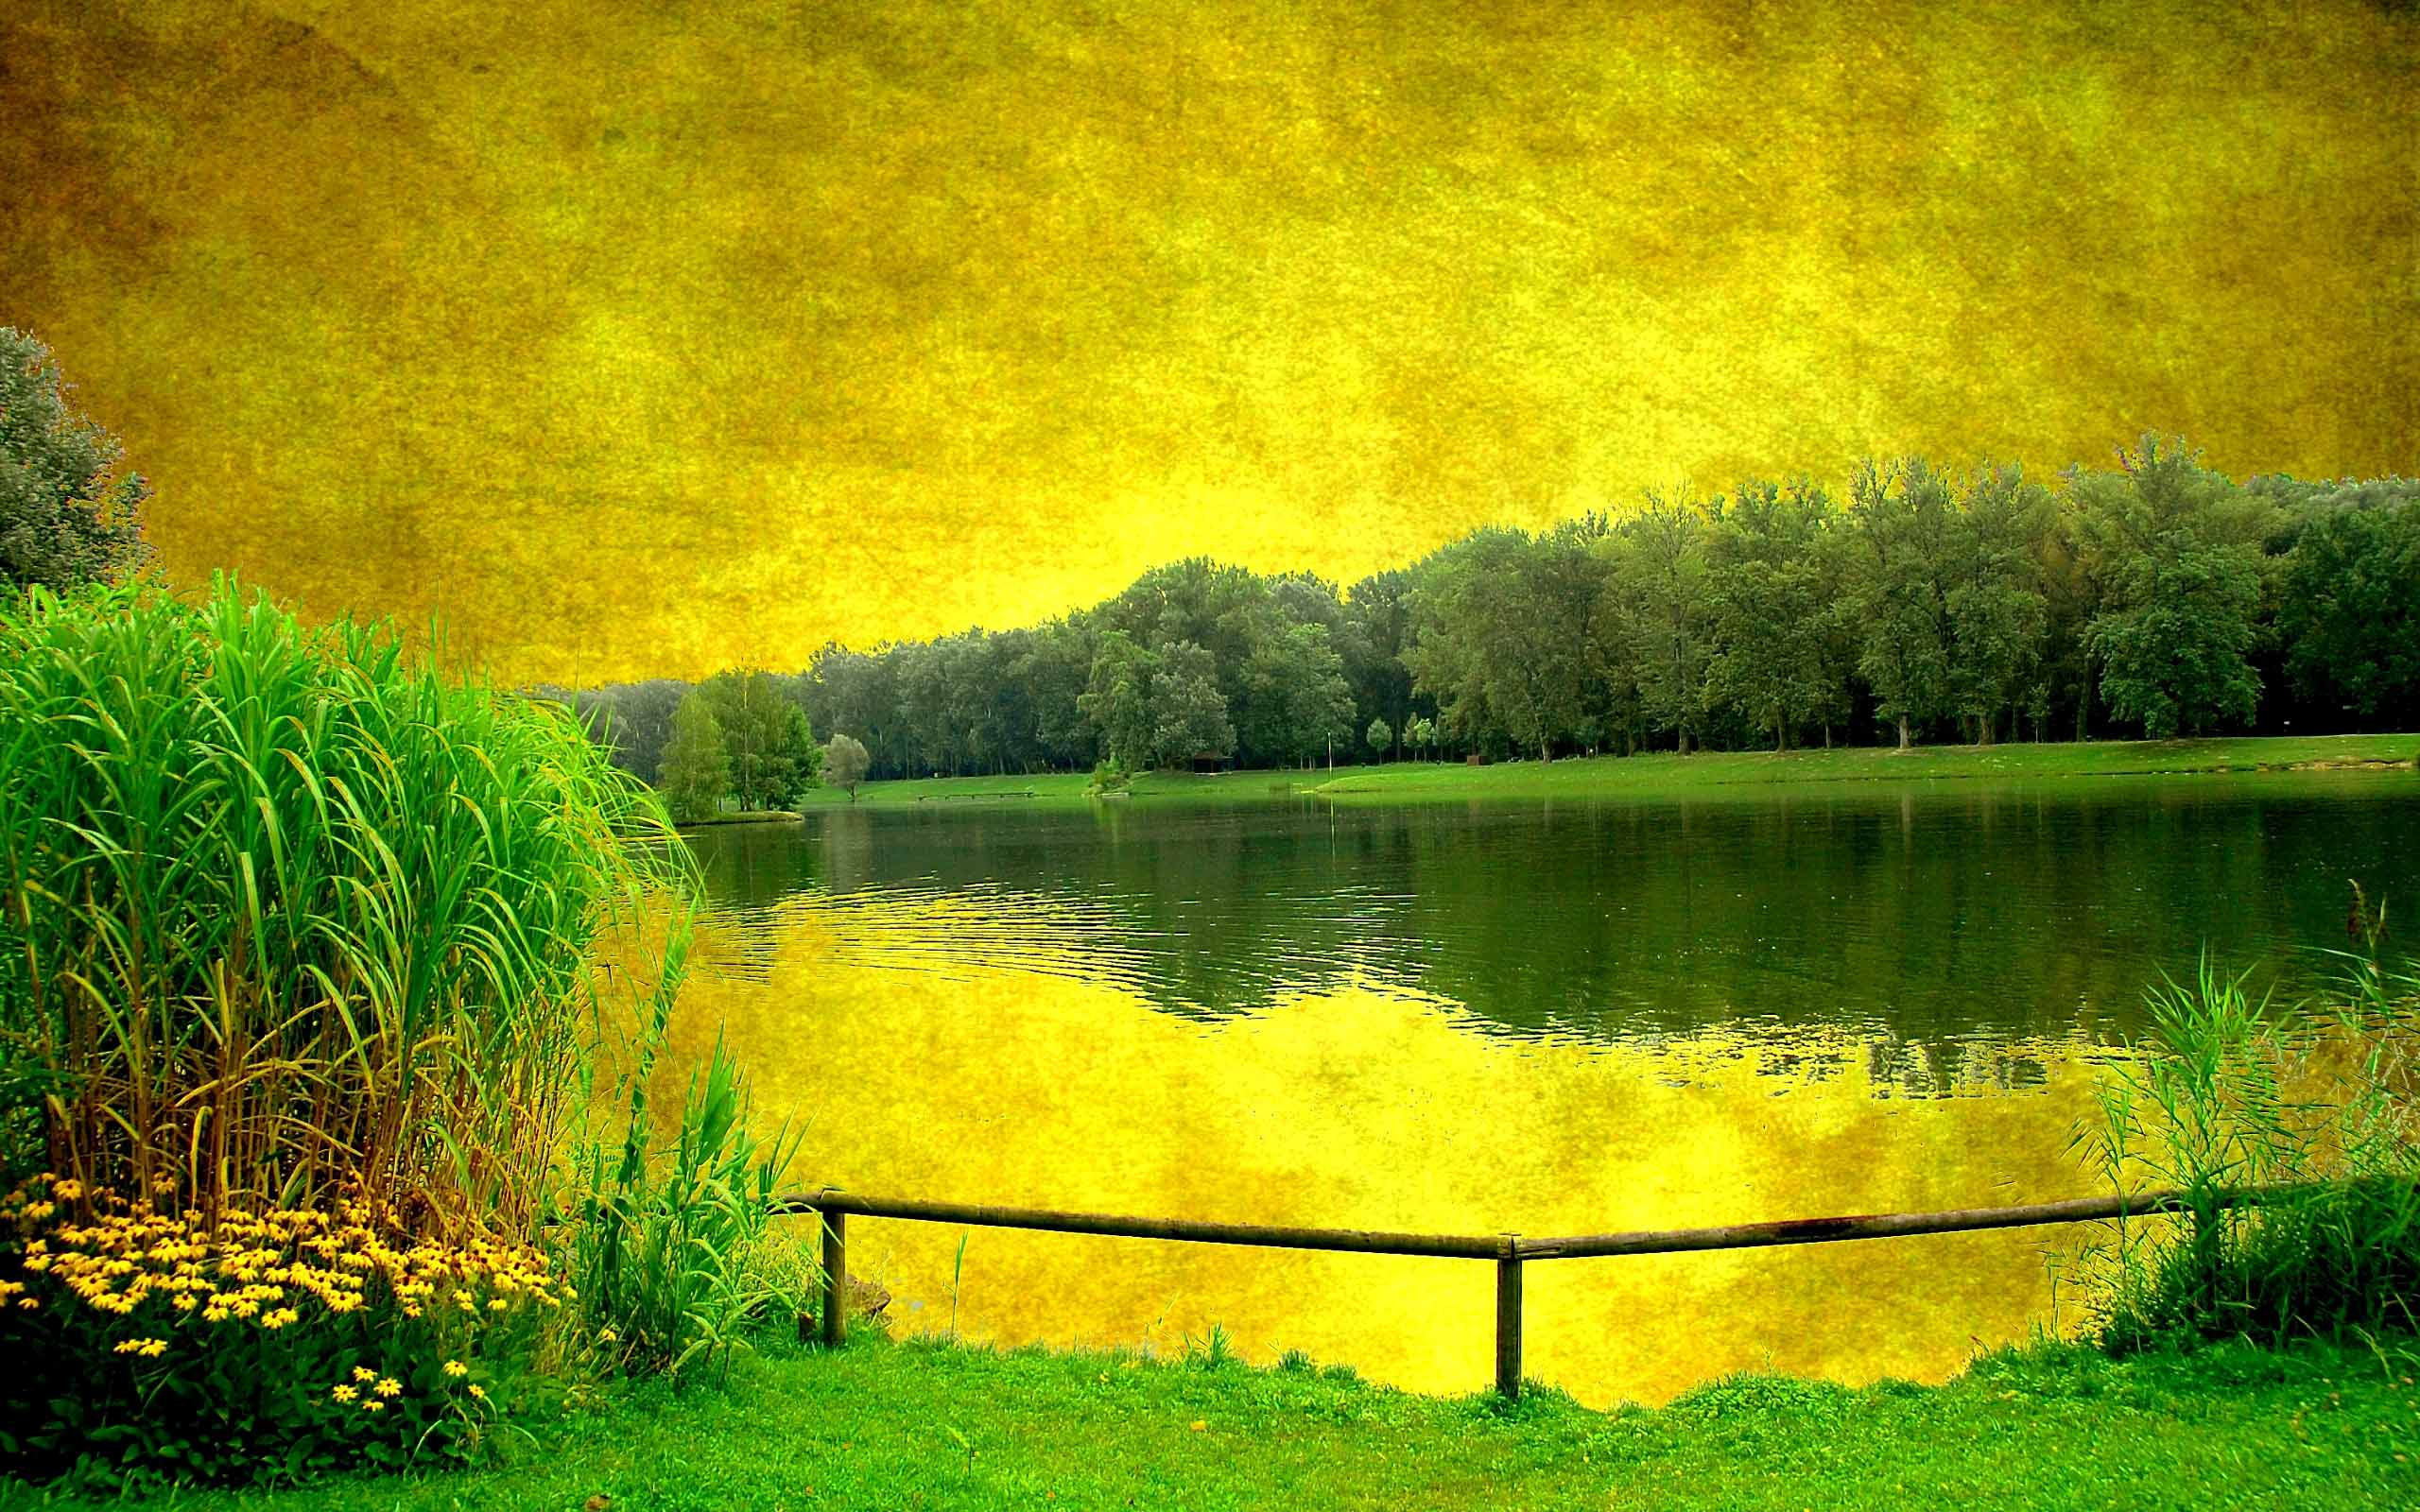 Nature Painting Wallpaper - Yellow And Green Paintings - HD Wallpaper